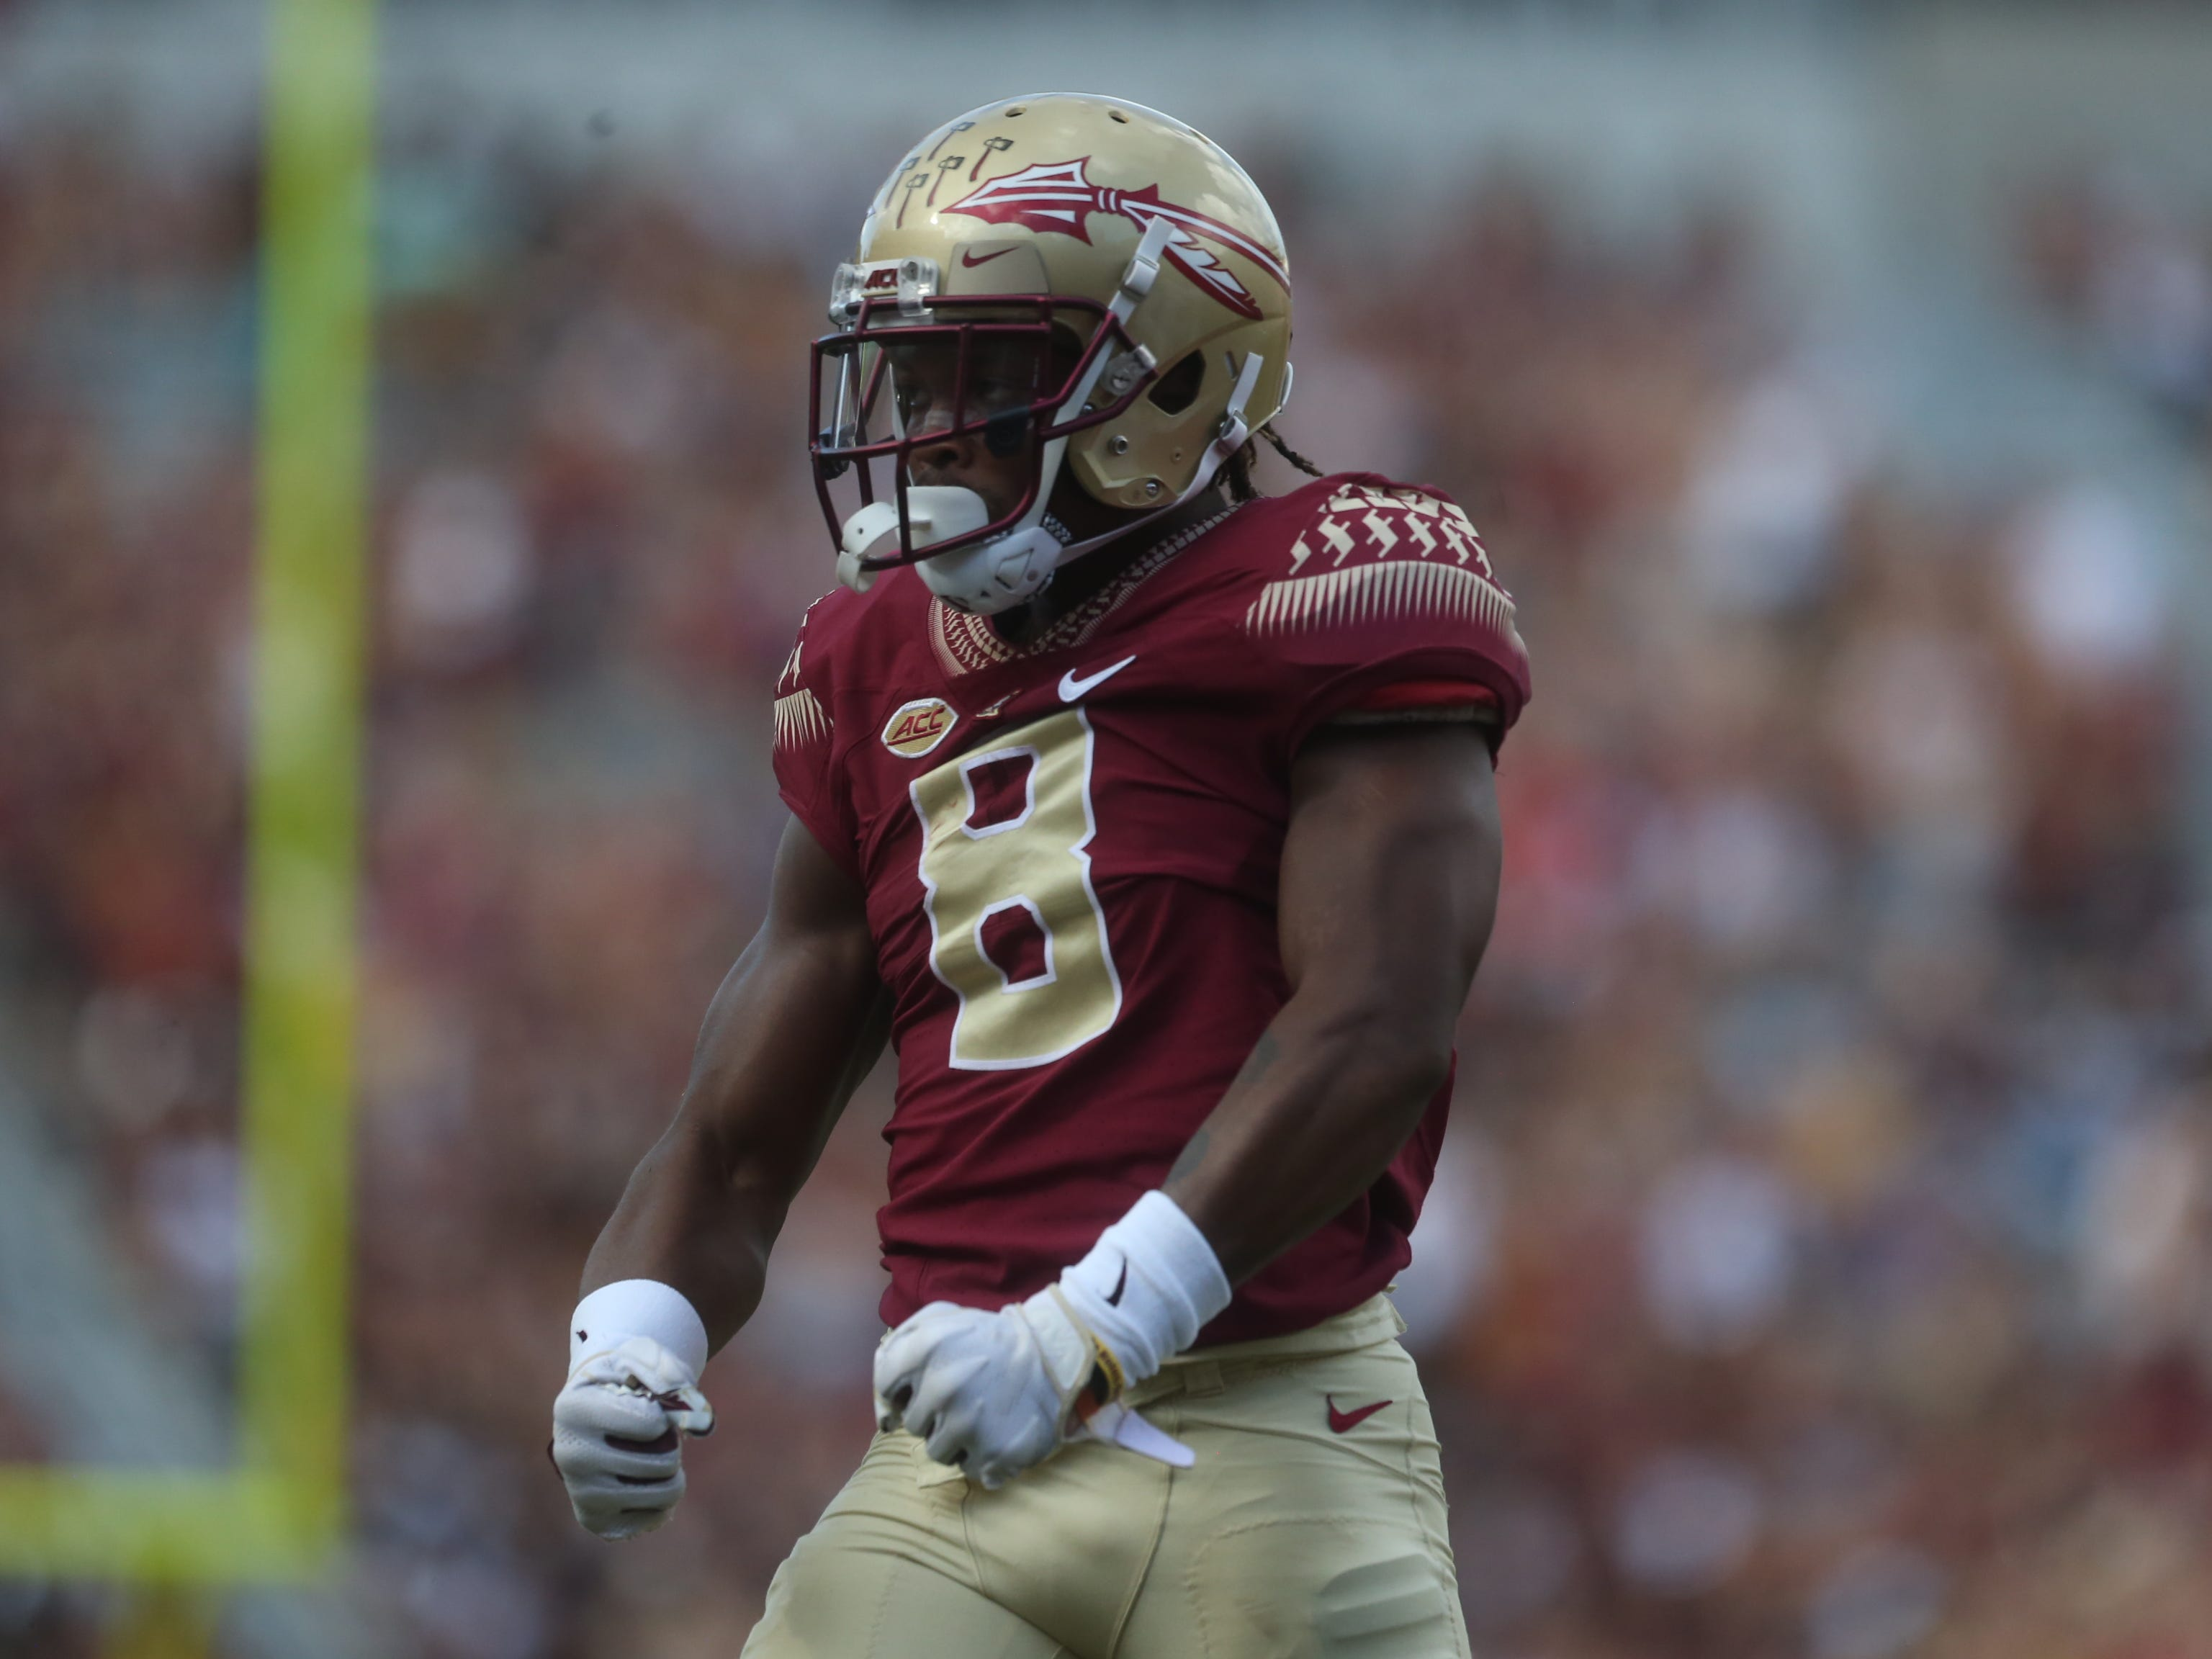 Florida State receiver Nyqwan Murray celebrates a long catch against Wake Forest by flexing his muscles at the Doak Campbell Stadium crowd on Saturday, Oct. 20, 2018.